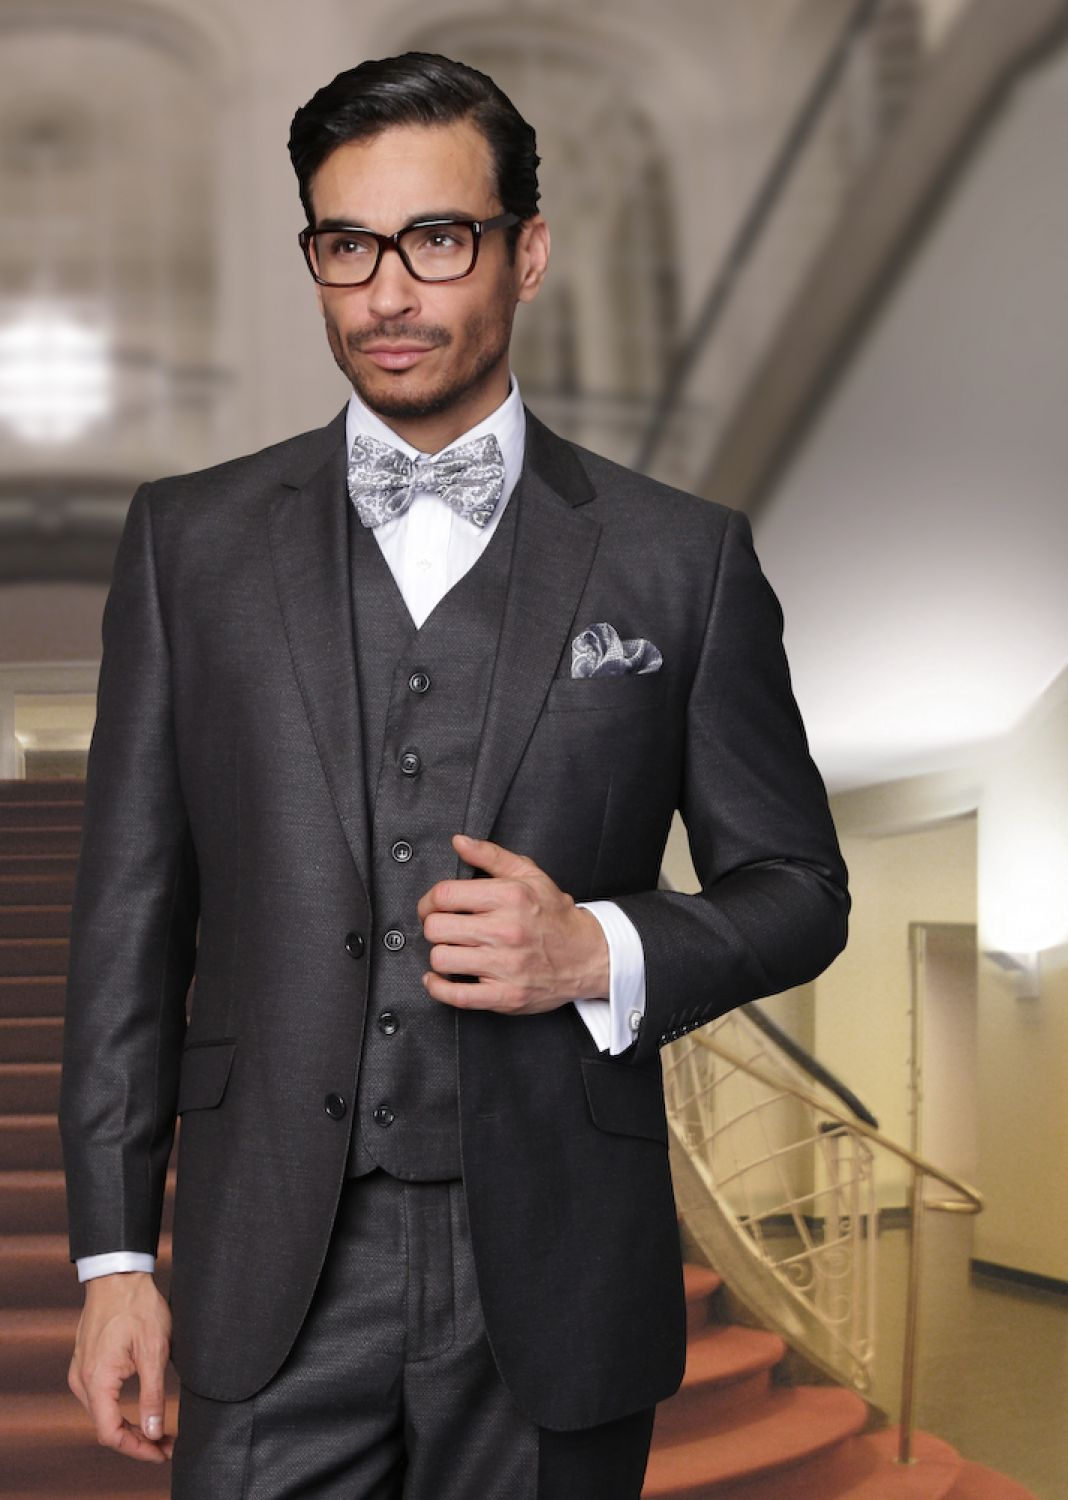 charcoal suit wedding - Google Search | The Groom | Pinterest ...